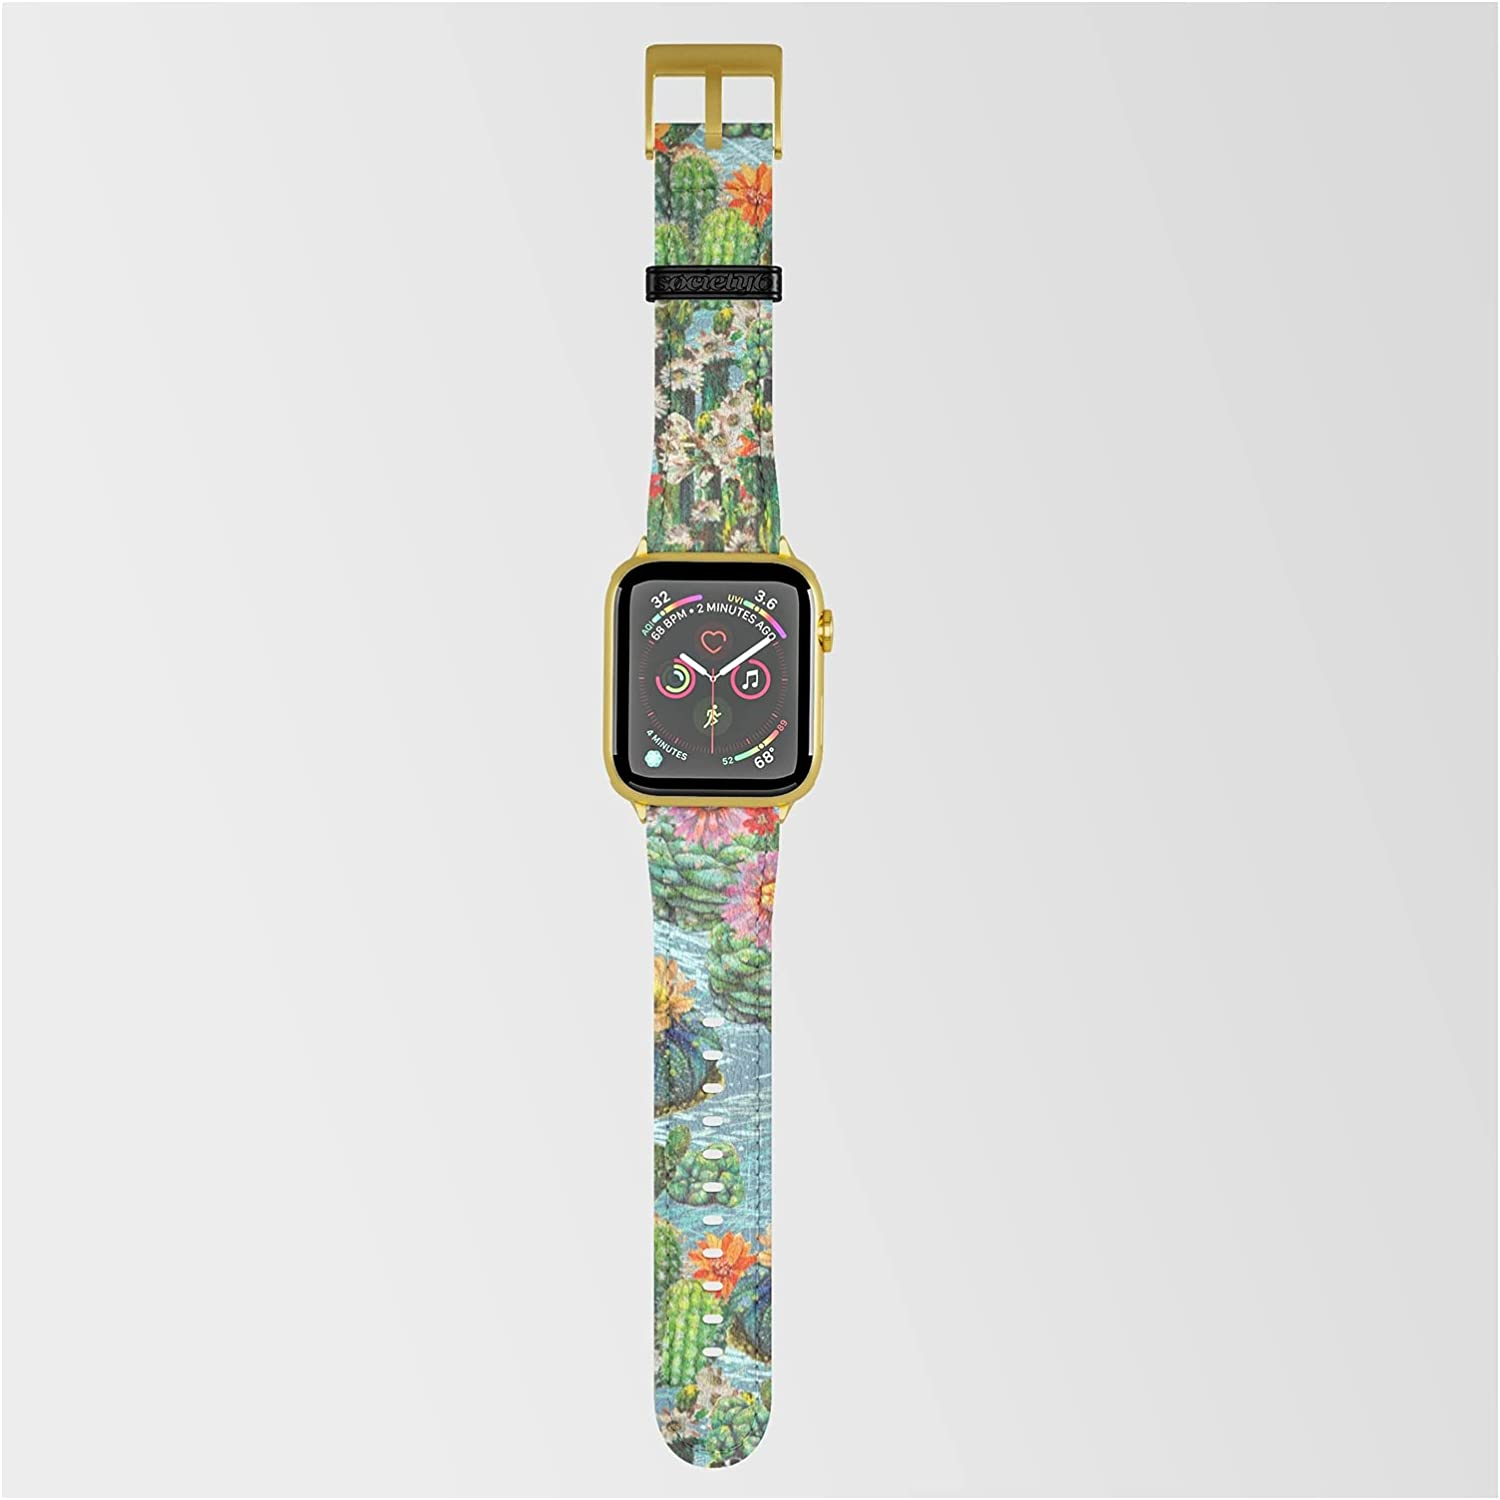 Cactus Desert - BBG by Compatible Janeferwong Sales for sale on Ranking TOP10 Band Smartwatch